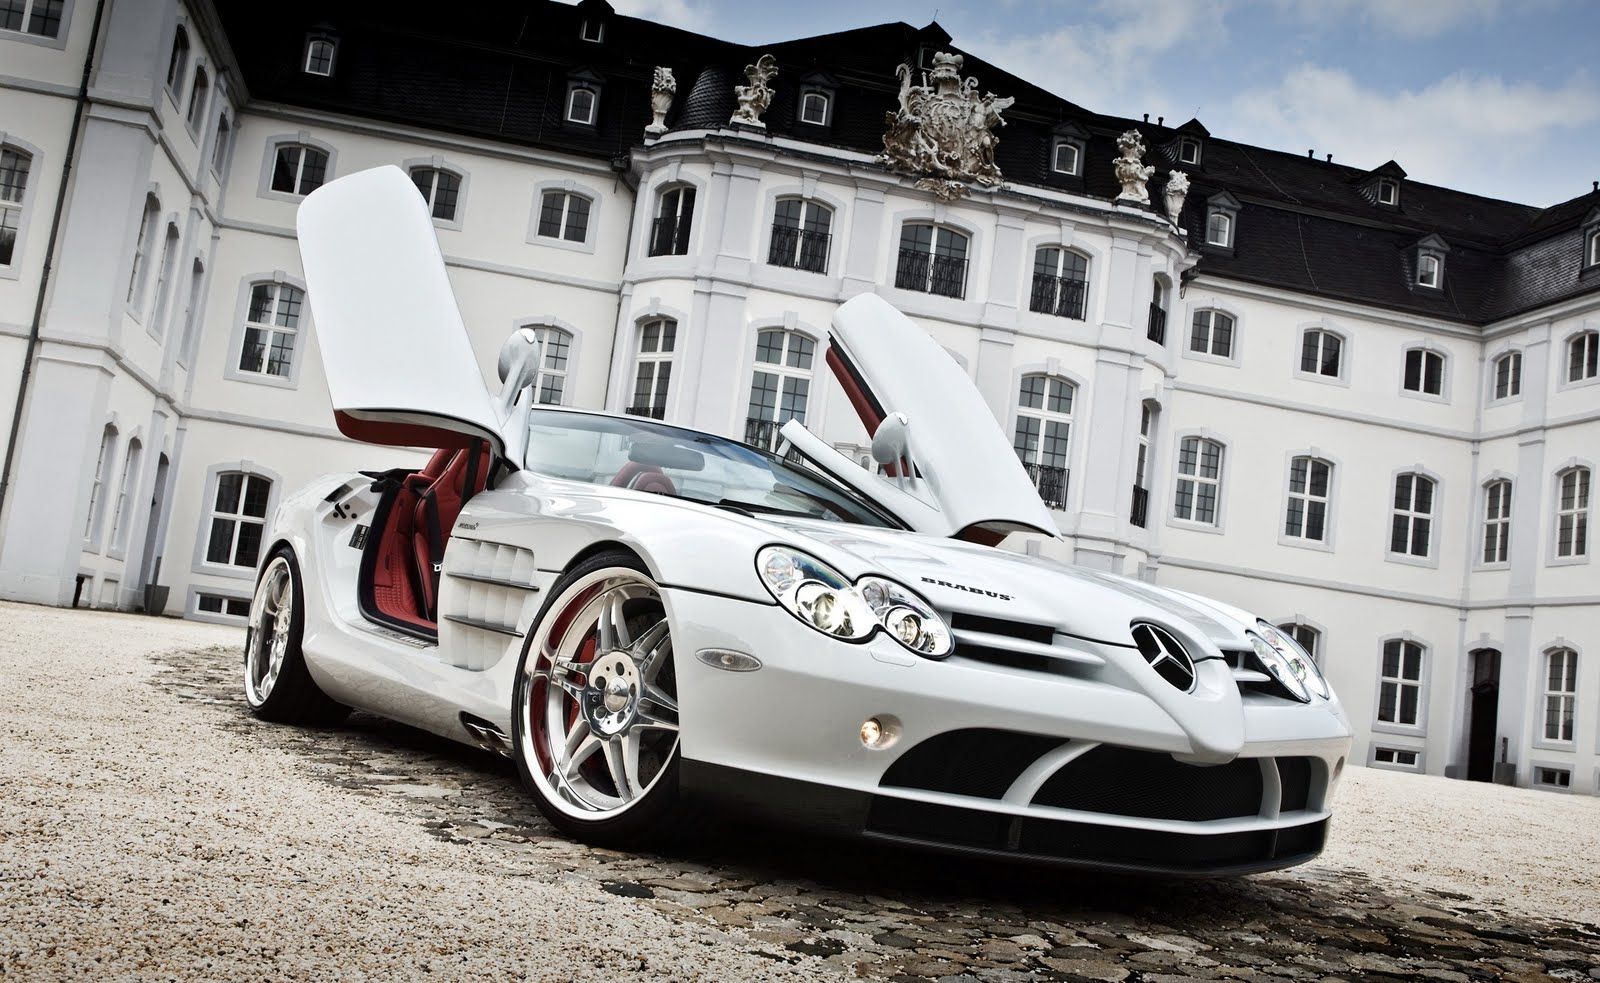 http://4.bp.blogspot.com/-gV0M7aS_Ip0/Tuy8yuVDTSI/AAAAAAAAA00/vfuJh3hGD5Y/s1600/Brabus-Exclusive-Sport-Program-Mercedes-Benz-SLR-Roadster-McLaren-2008-1920x1200-003.jpg